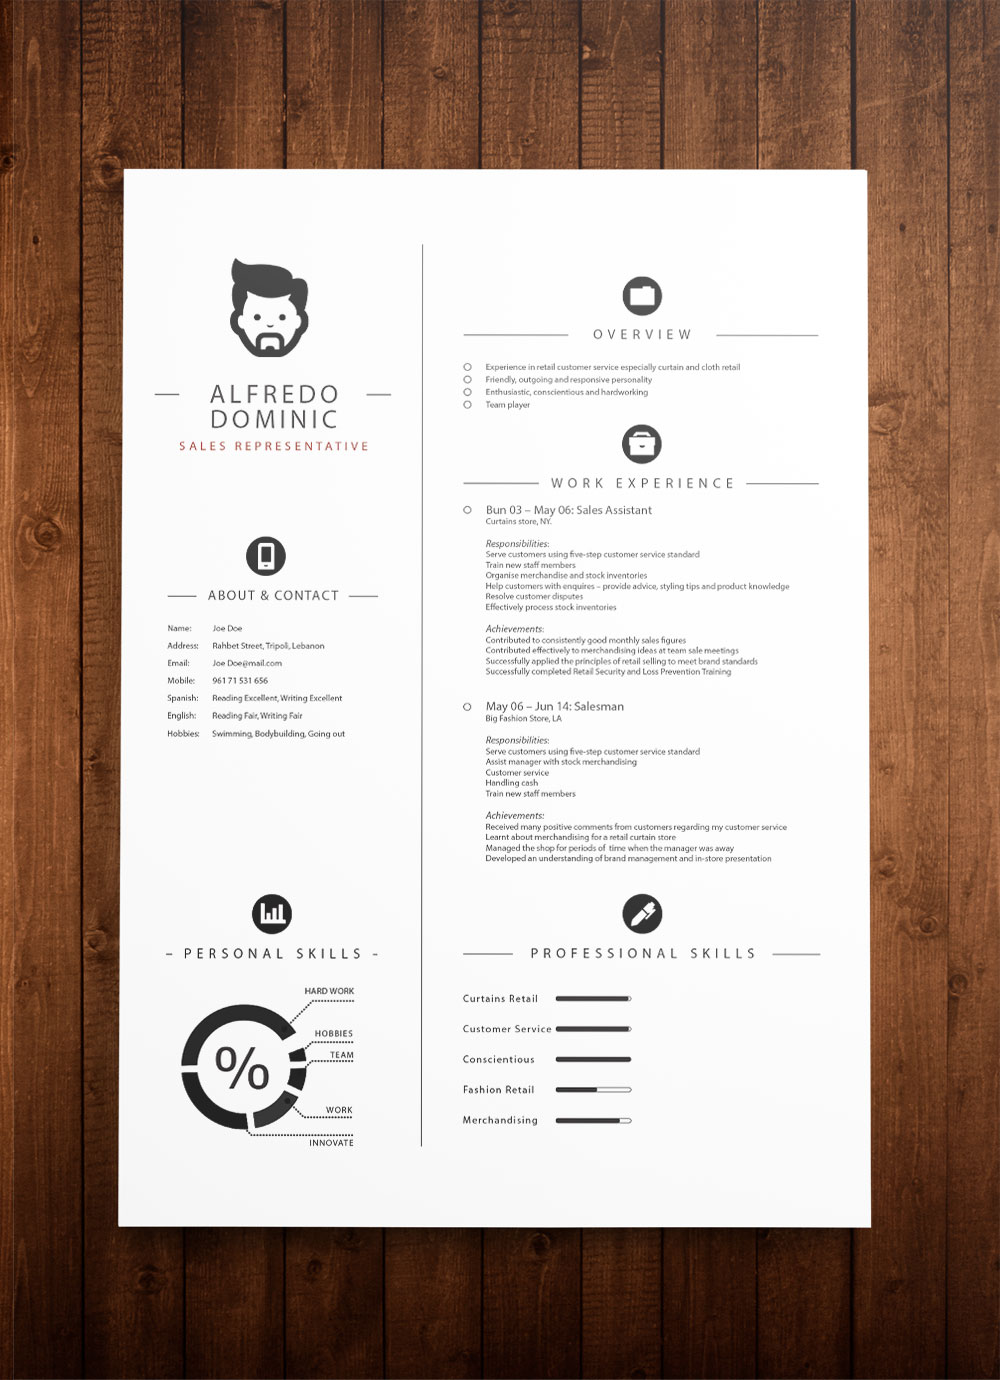 downloadable cv format resume template apprentice carpenter sample